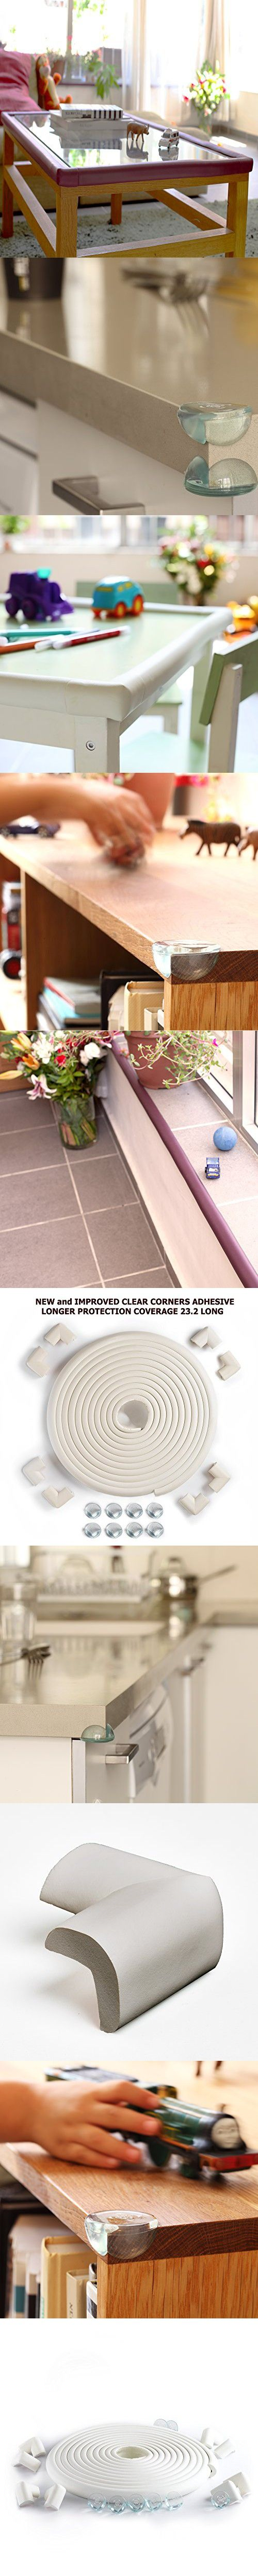 23.2ft LONG-16 Corners Guards Protector. SafeBaby & Child Safety Baby Proof Clear protective bumper guard for furniture. Cushion foam strip bricks pad childproof fireplace guard for toddlers.Off-White